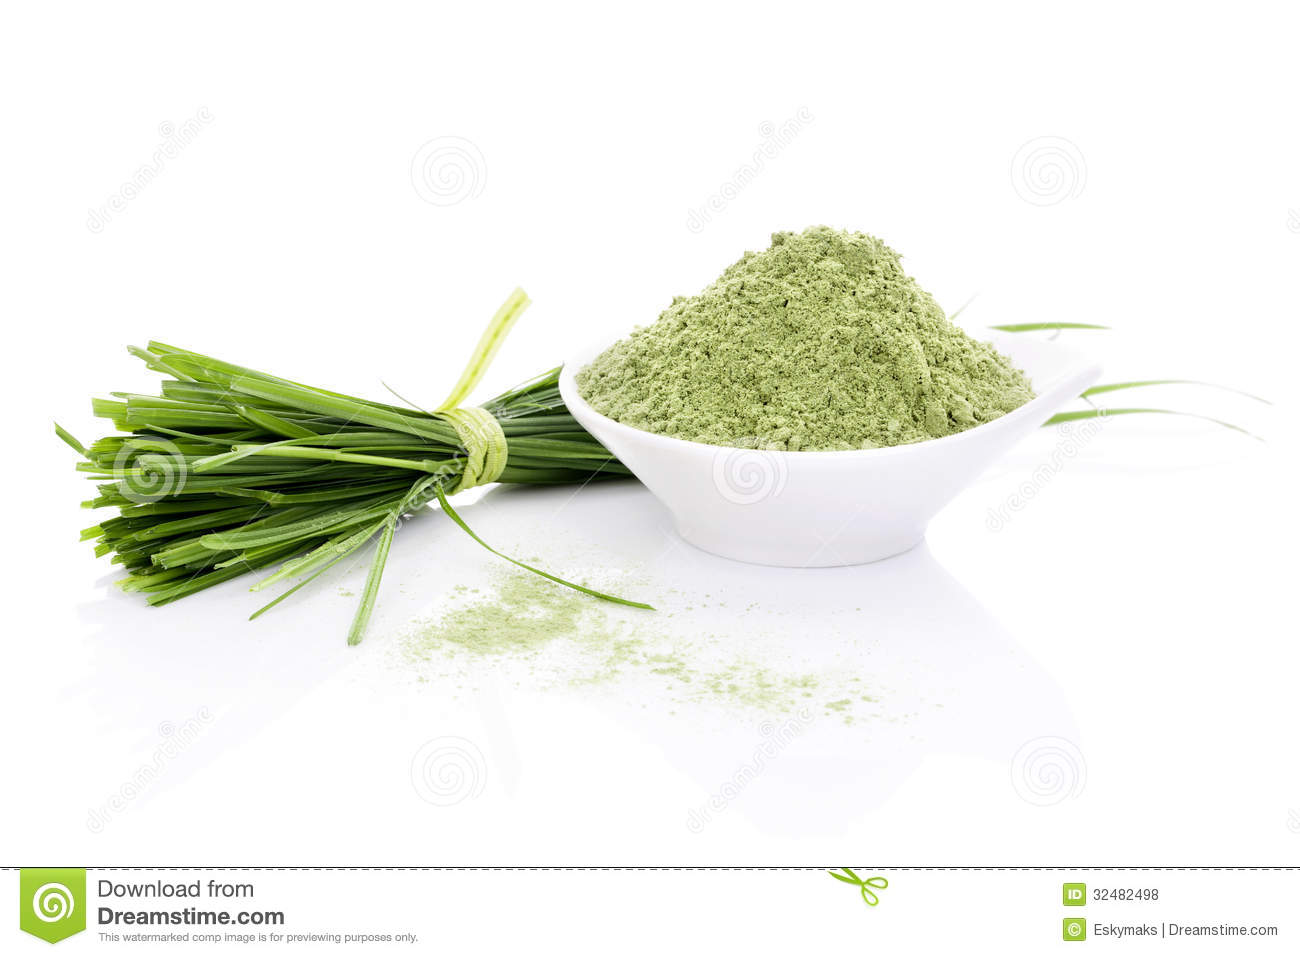 ... on white background. Green foods. Natural organic healthy living